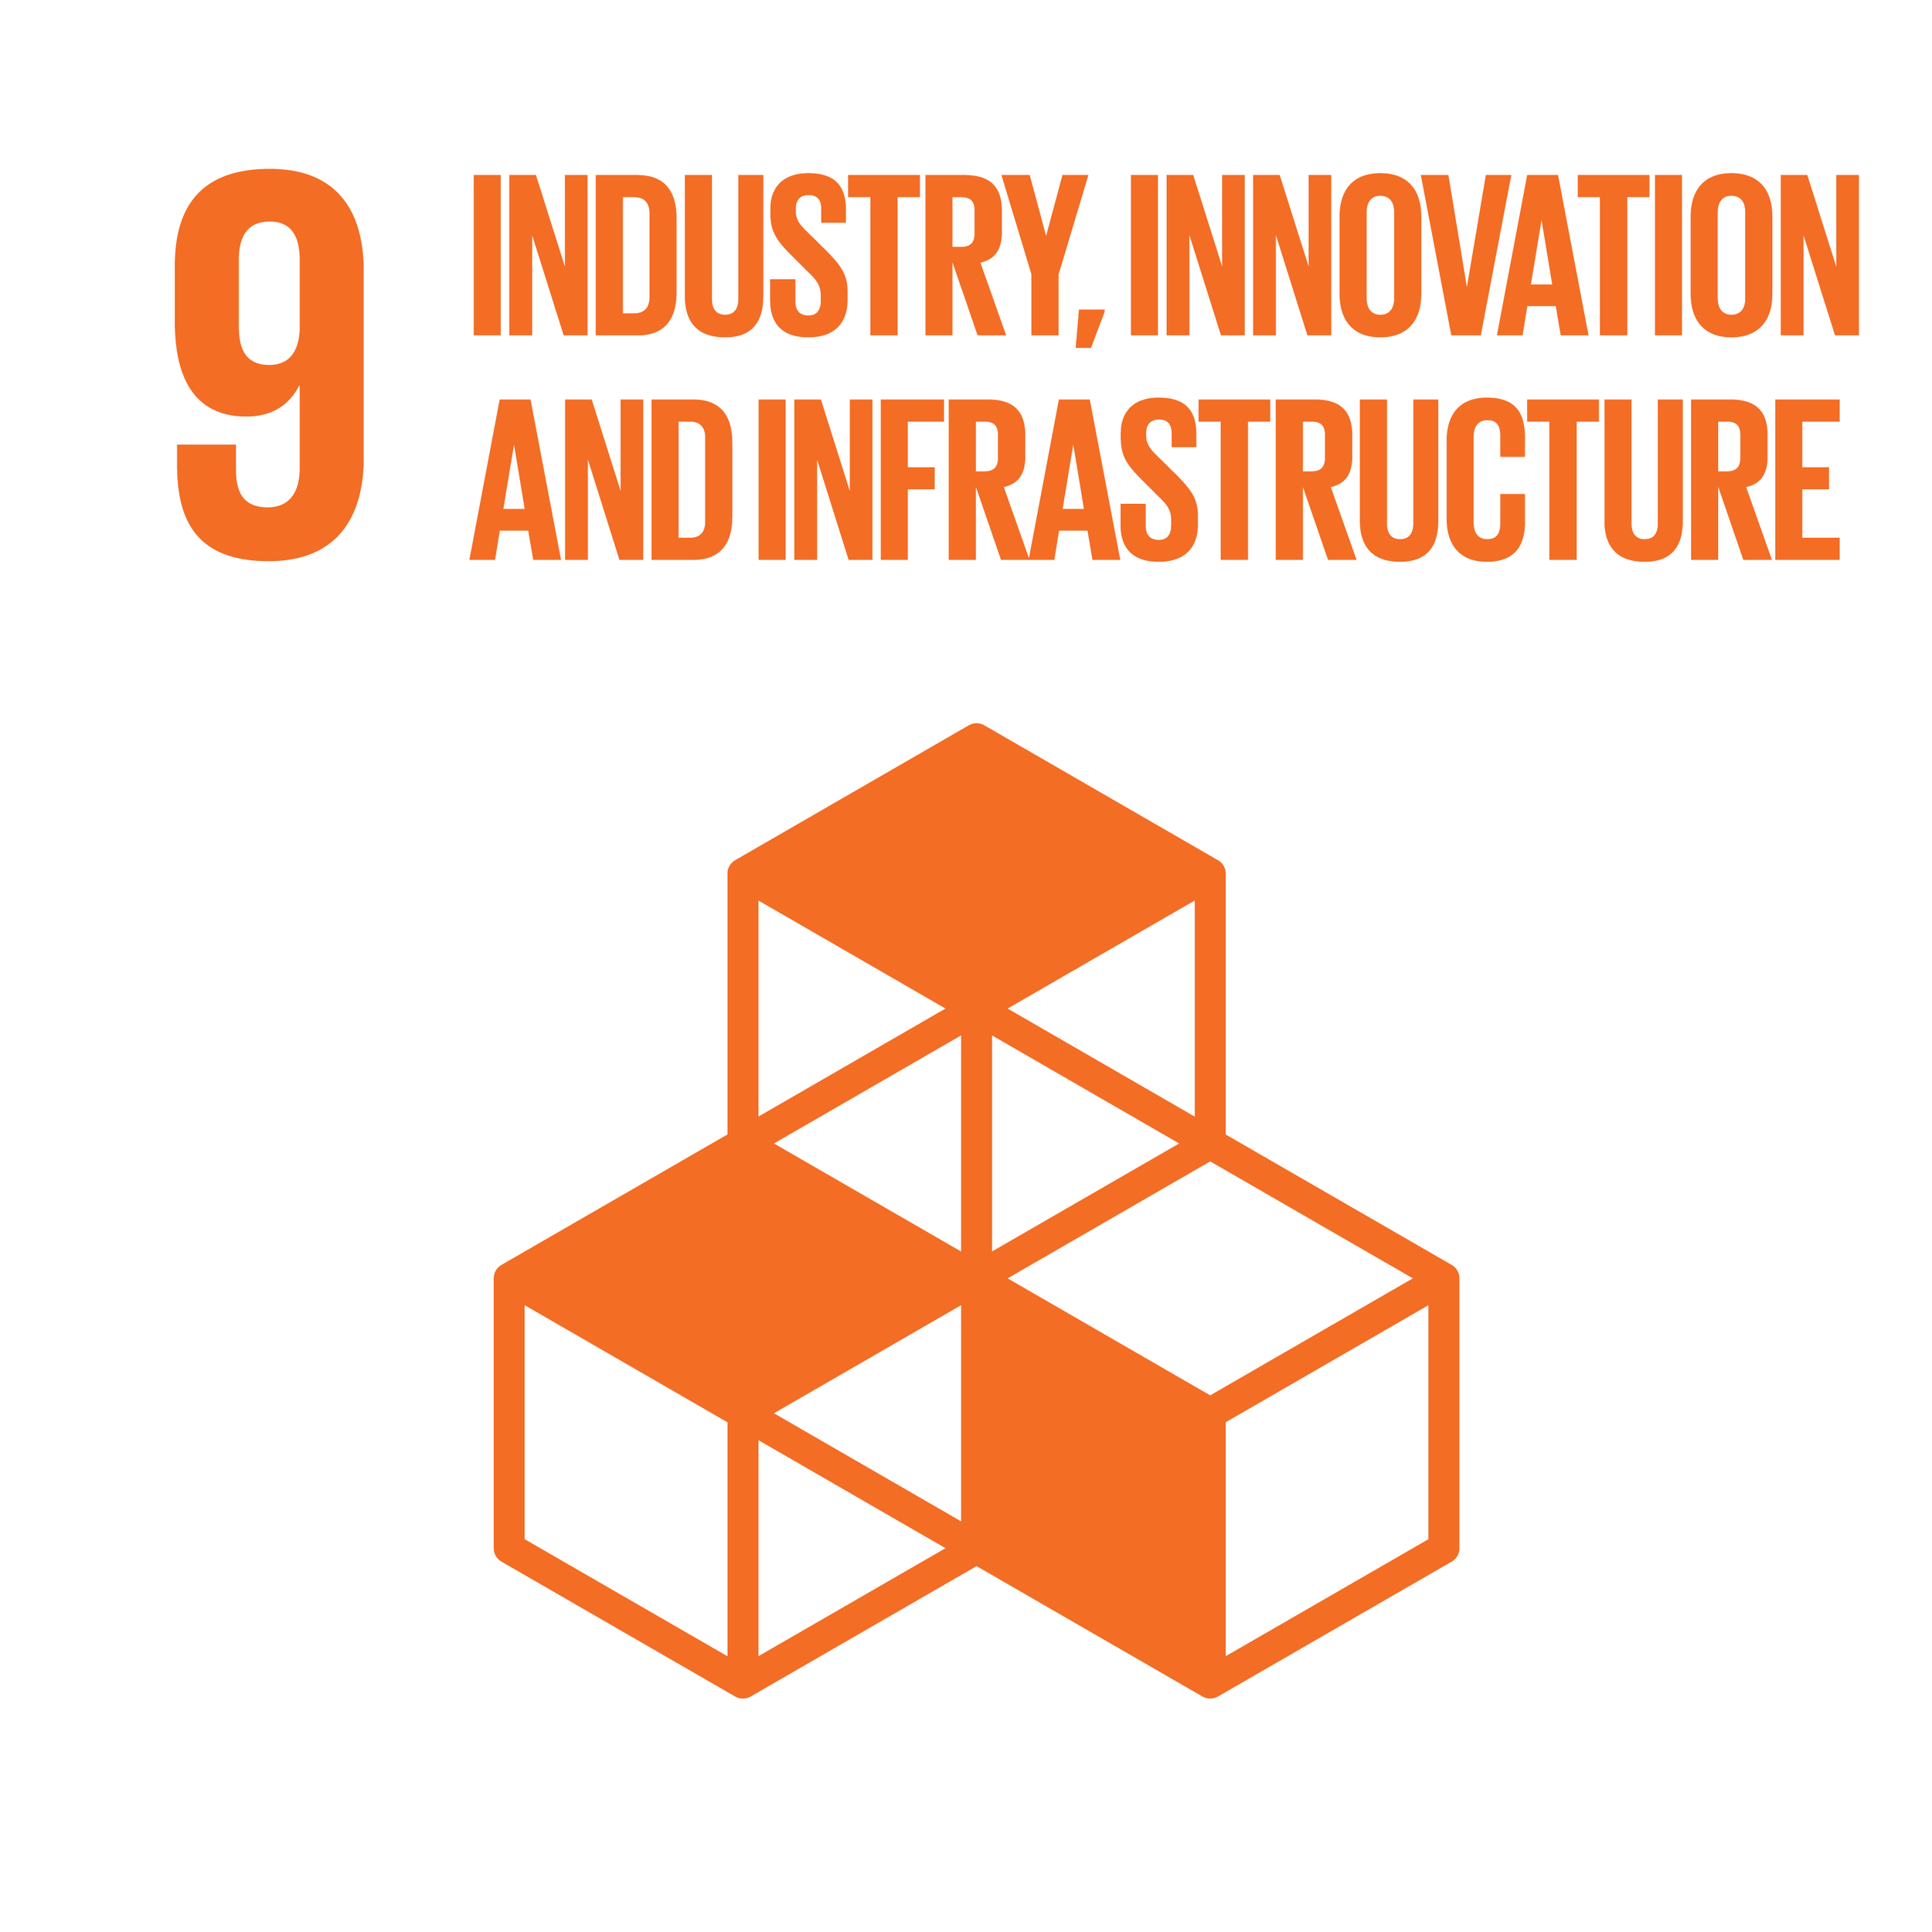 E_INVERTED SDG goals_icons-individual-RGB-09.png